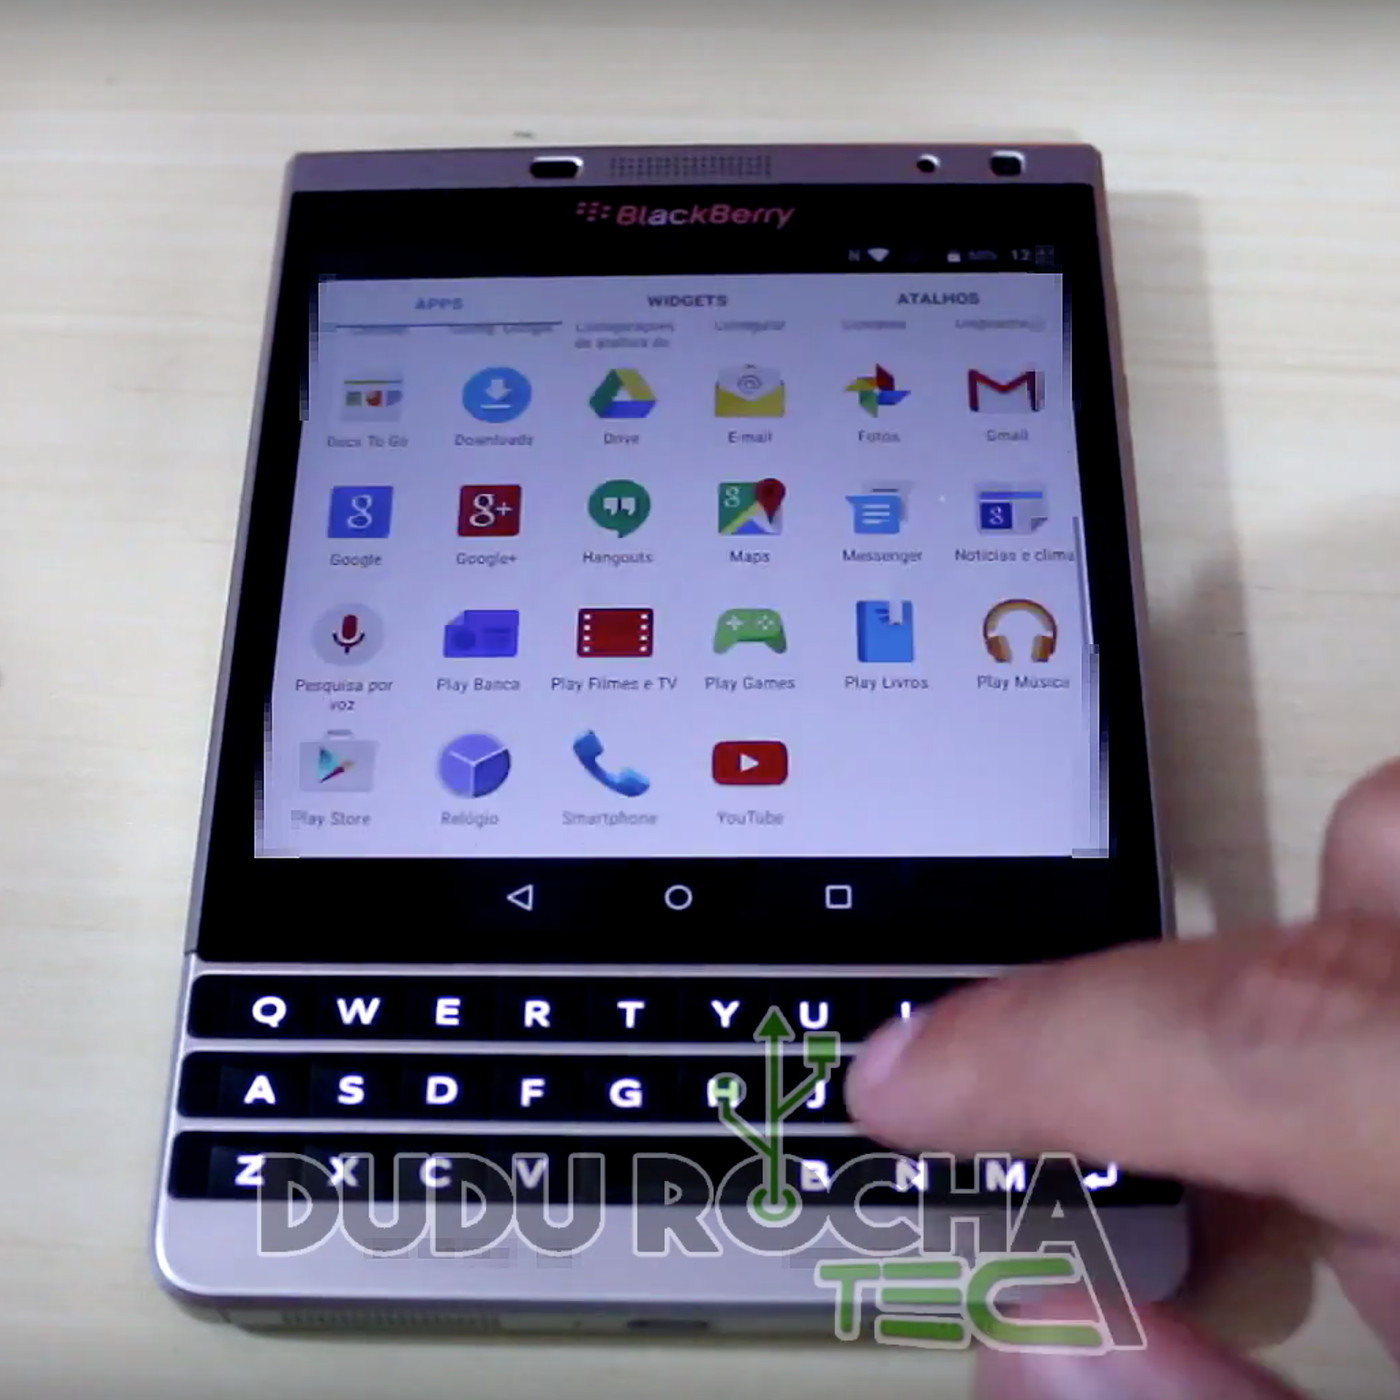 BlackBerry Passport shown running Android in new video - The Verge